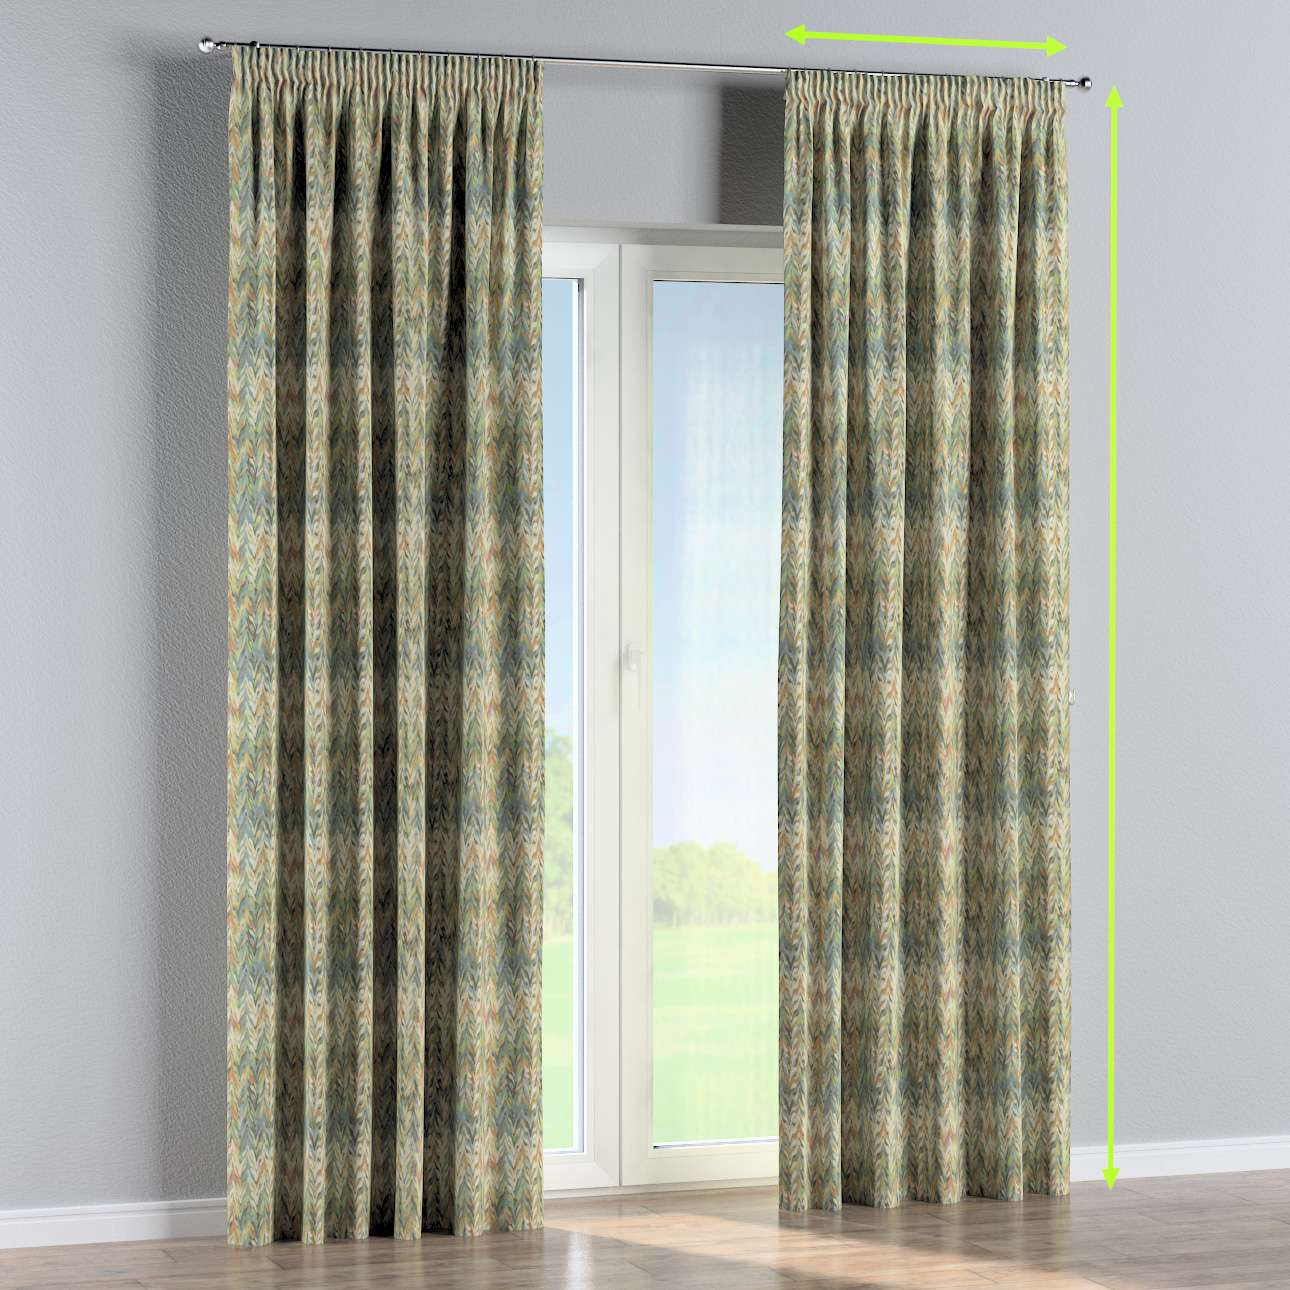 Pencil pleat curtain in collection Tropical Island, fabric: 142-67